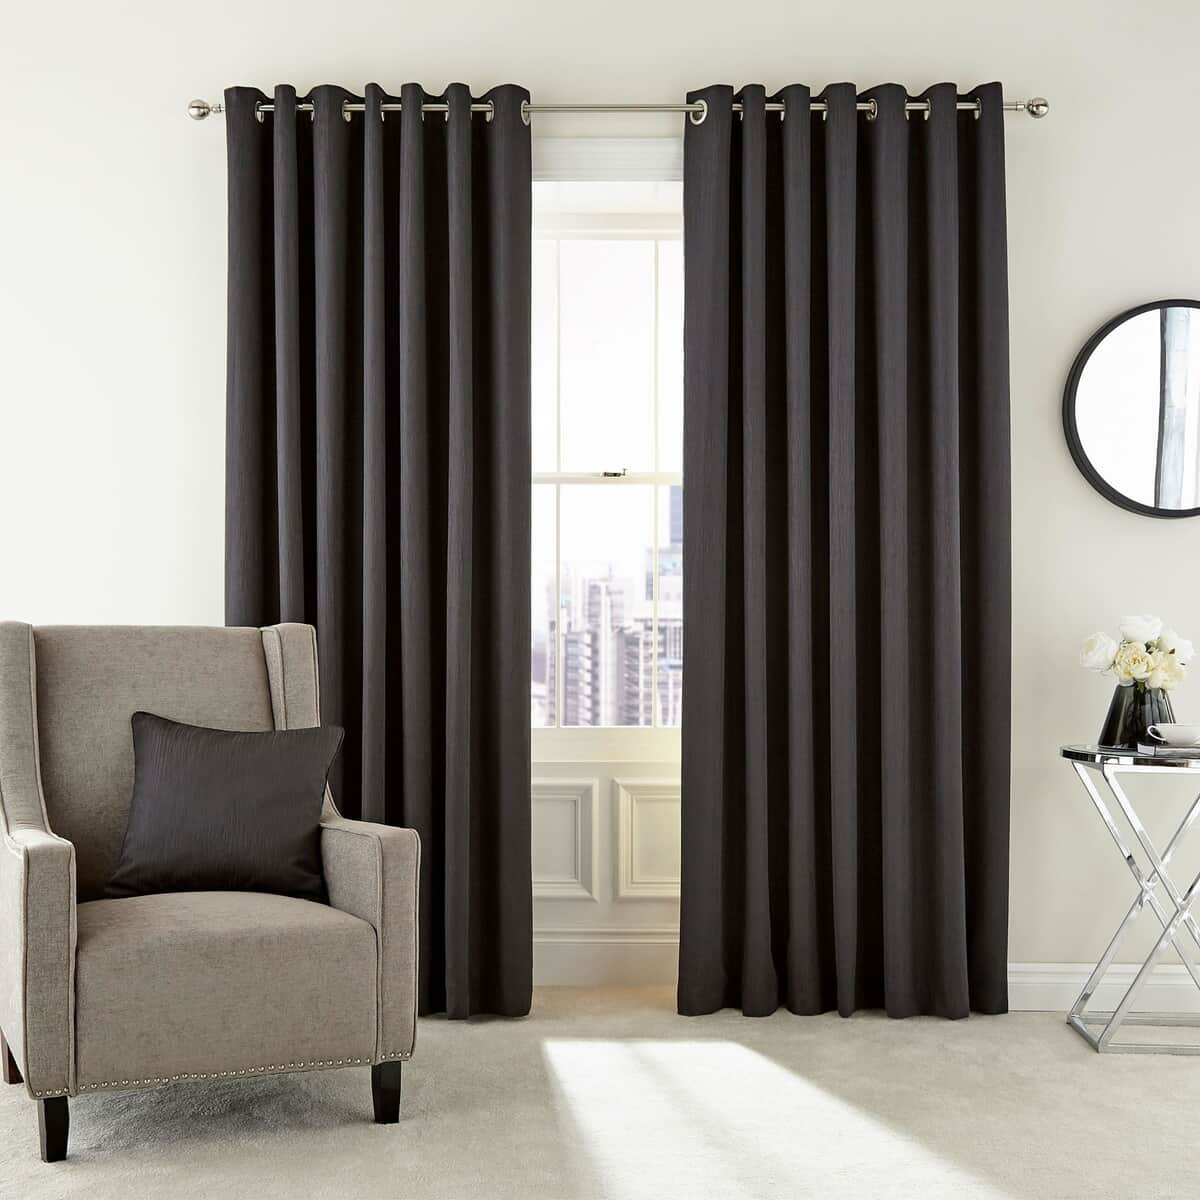 Peacock Blue Hotel Barcelo Graphite Curtains large